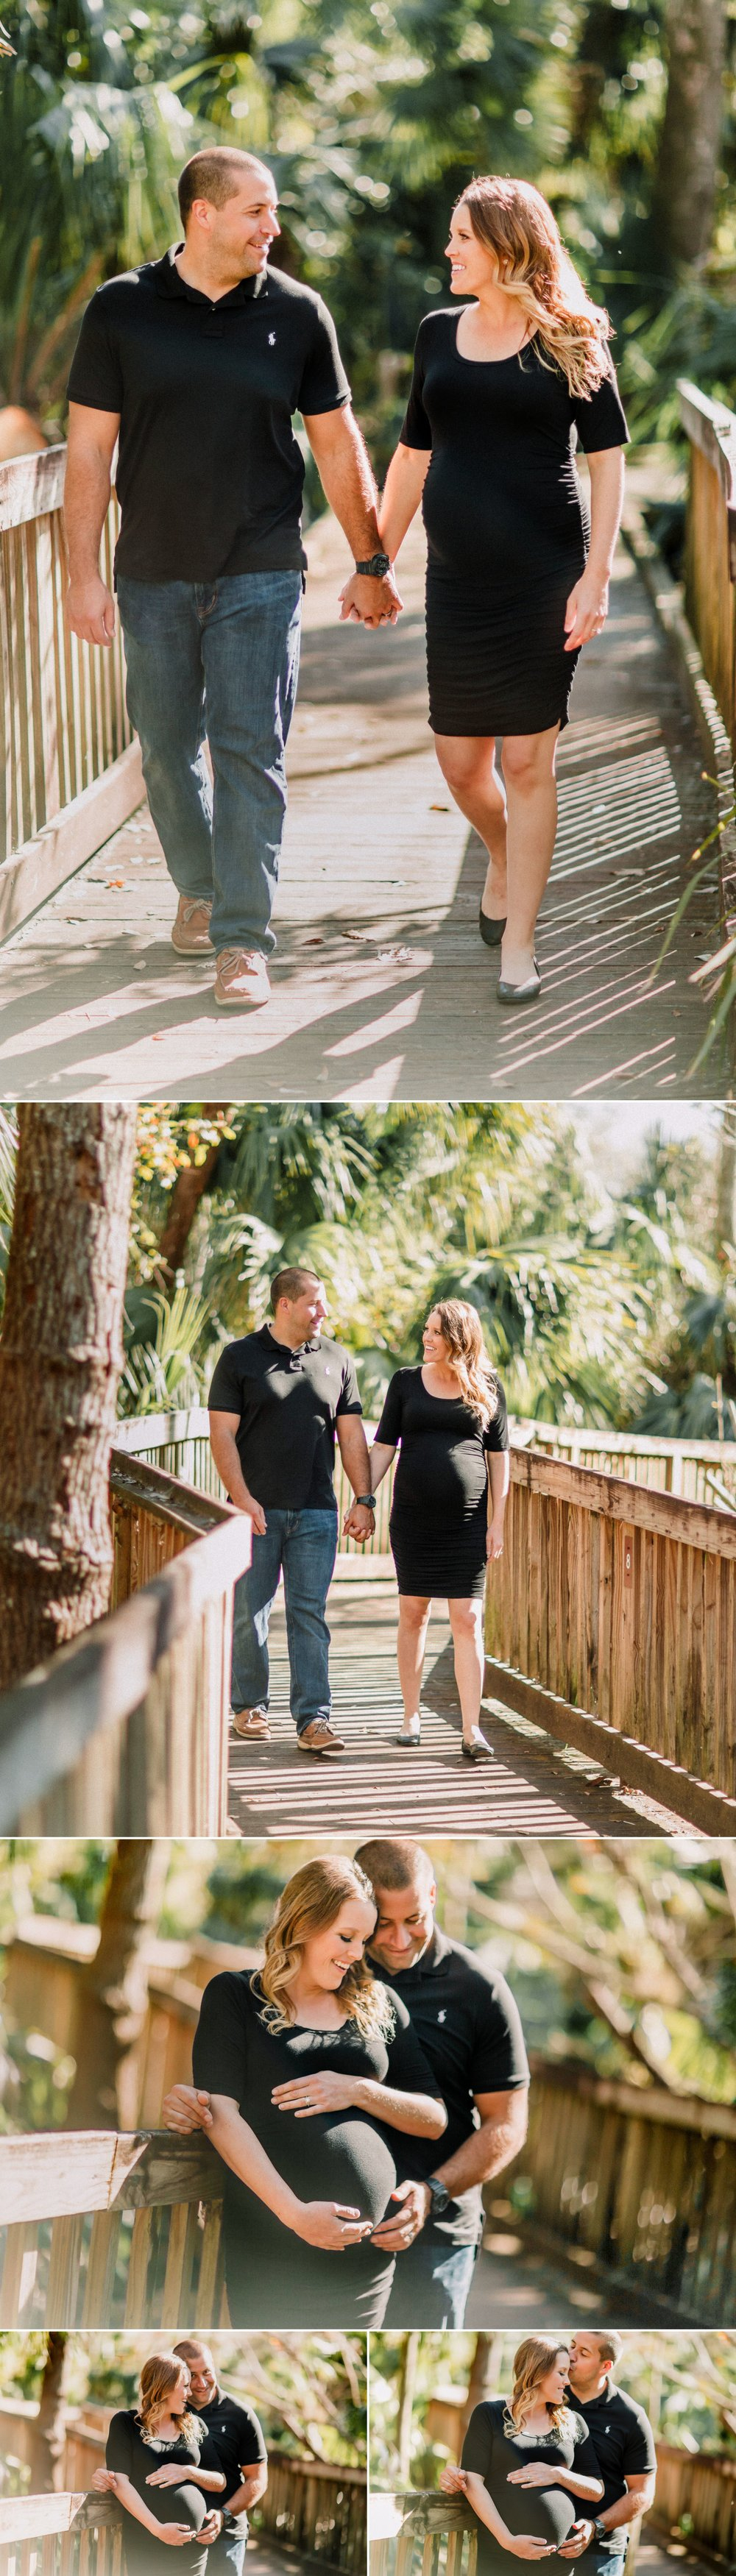 Blue_Springs_Wekiwa_State_Park_Winter_Park_Boho_Chic_Lifestyle_Maternity_Photos_by_ShainaDeCiryan.com3.jpg